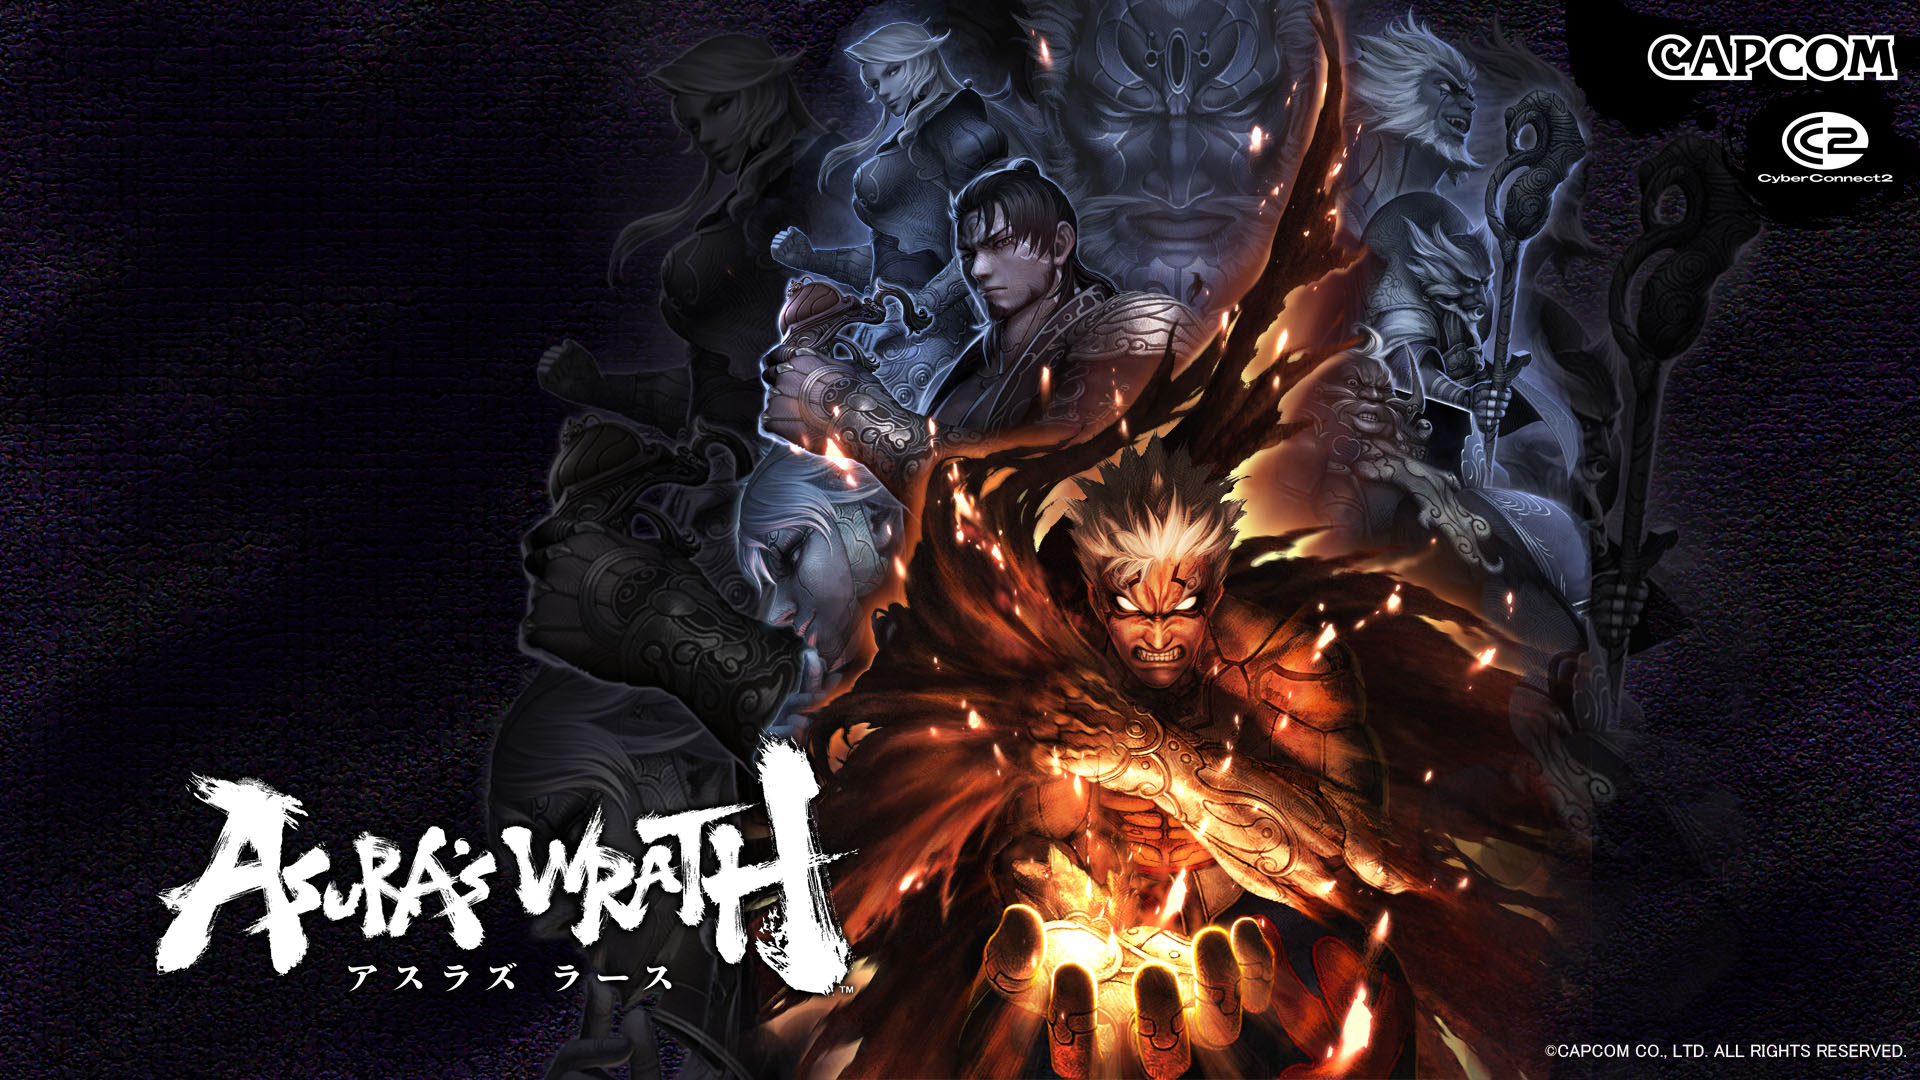 Asuras Wrath Hd Wallpapers Backgrounds Wallpaper Asura S Wrath Wrath Hd Wallpaper